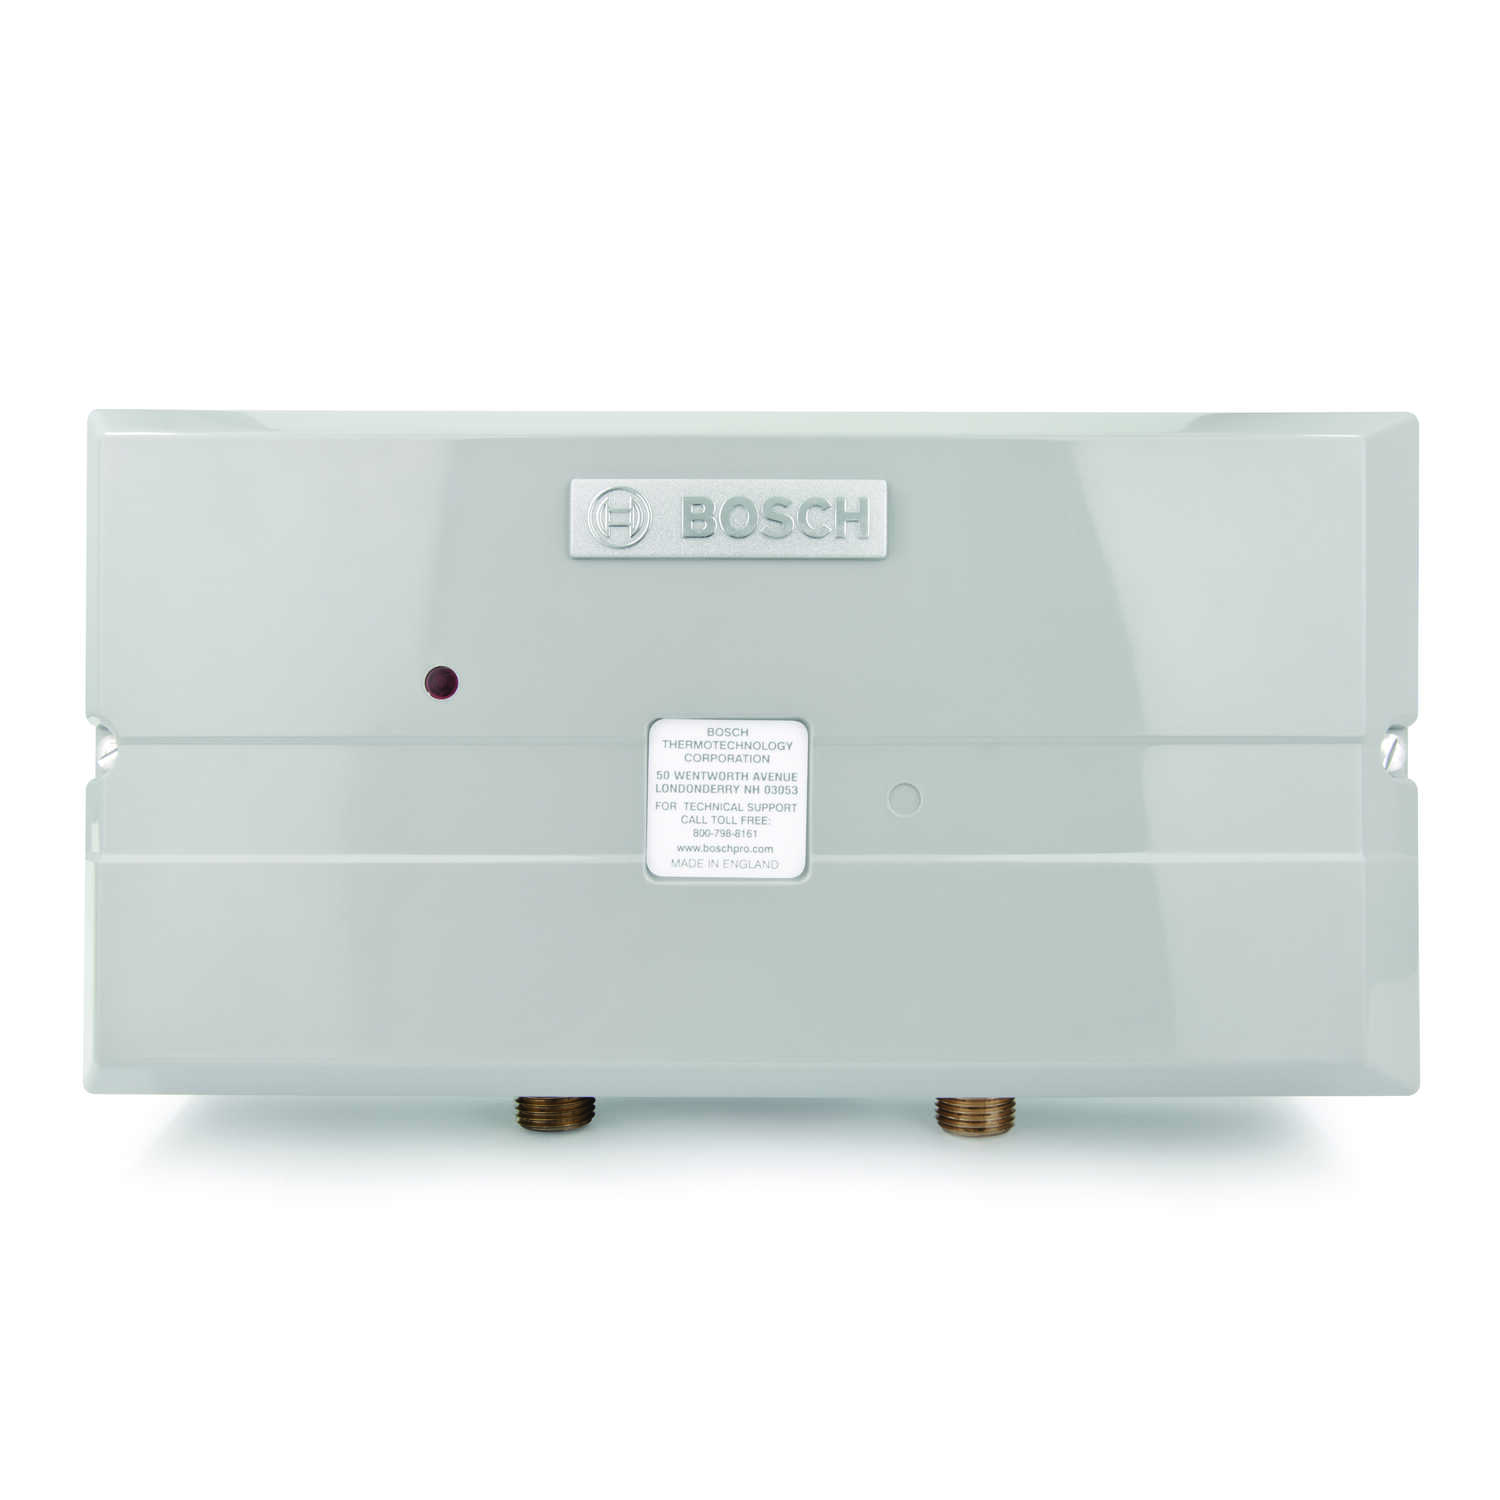 Bosch  Tronic 3000  Electric  Tankless Water Heater